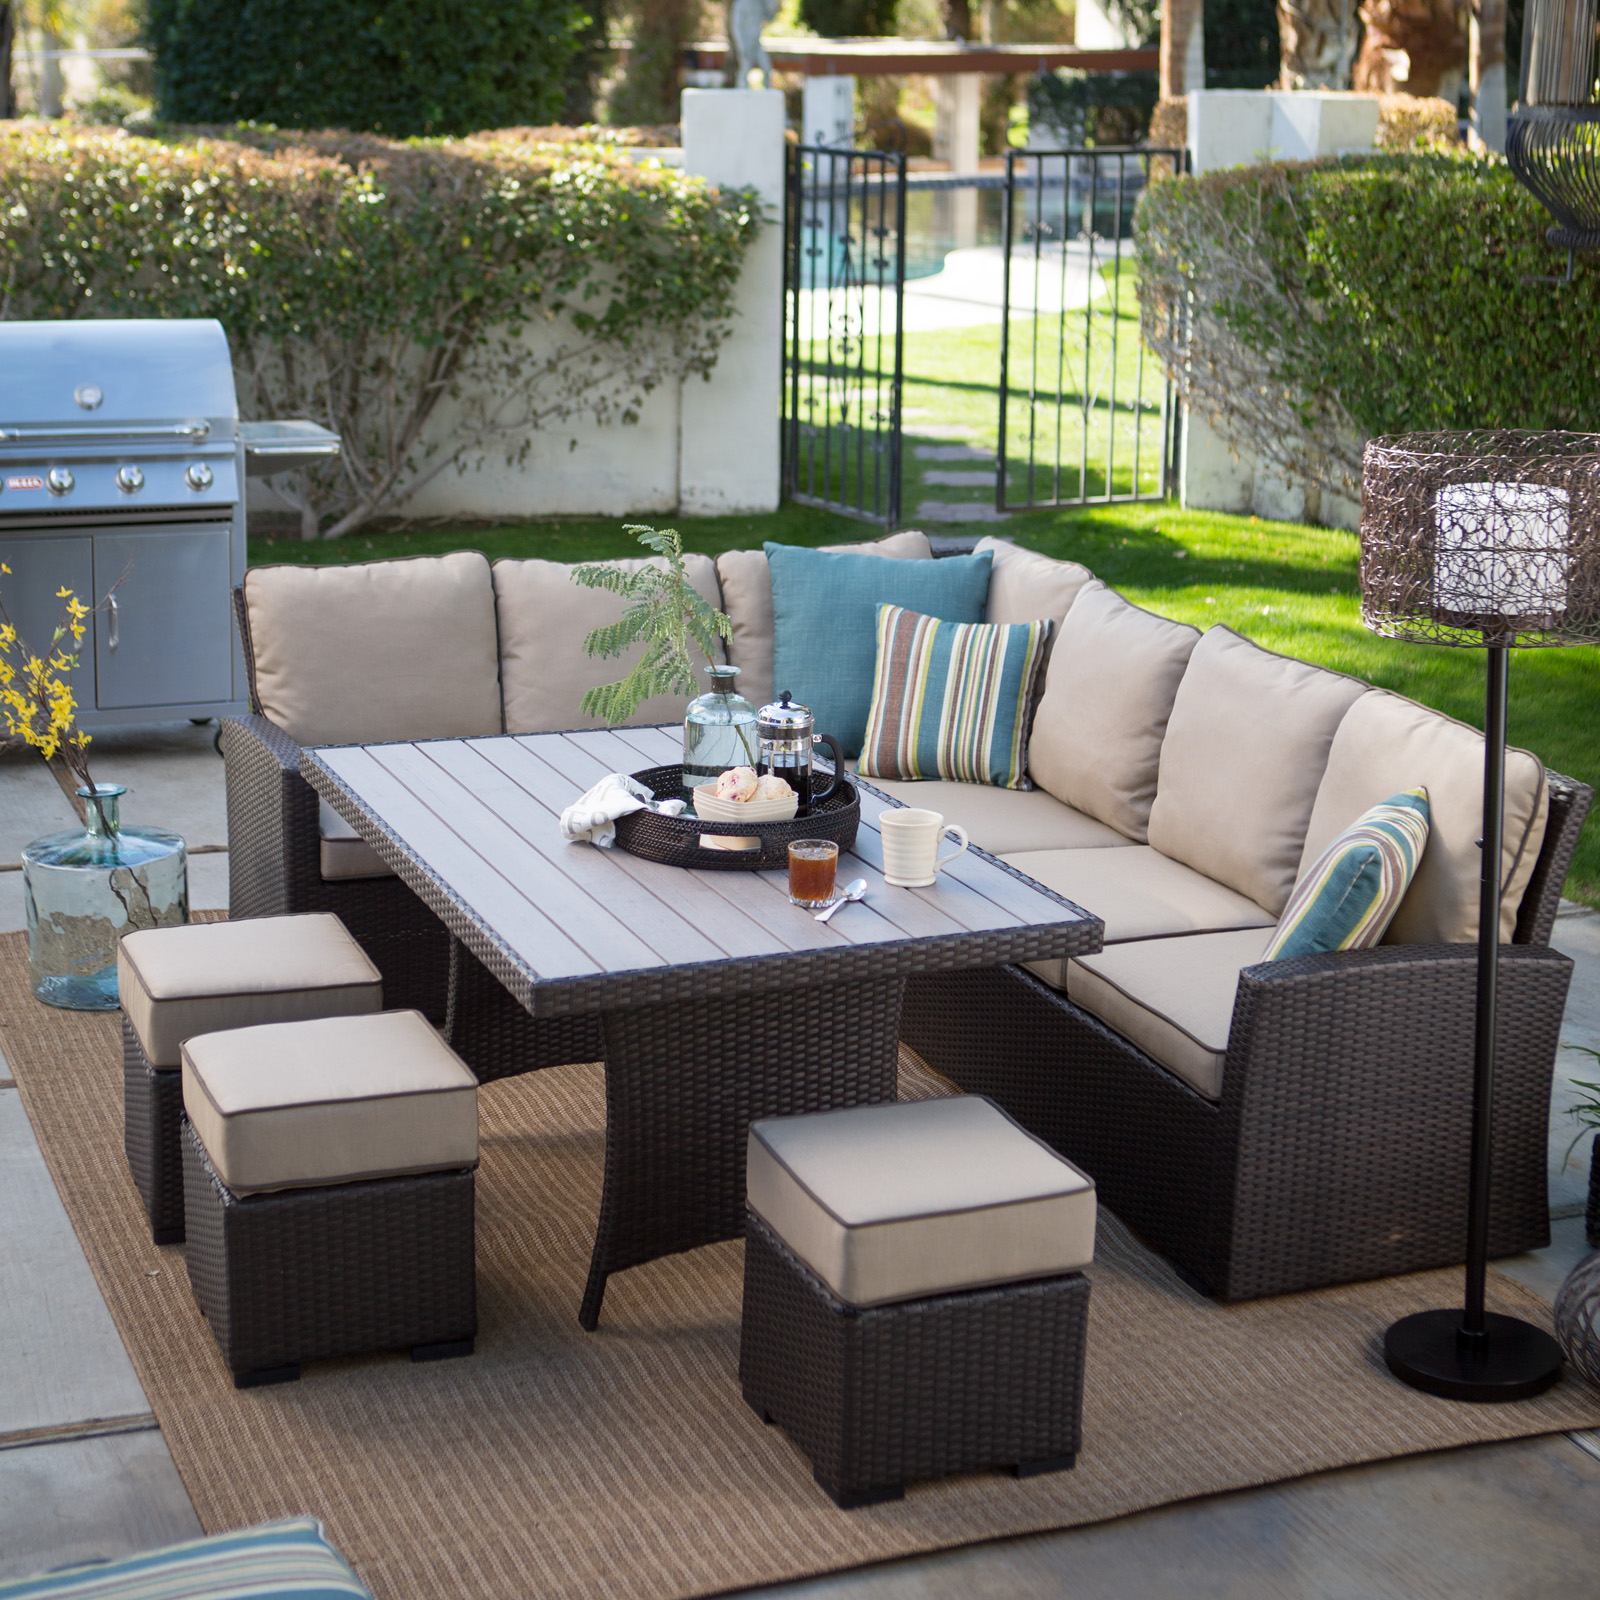 Belham Living Monticello All-Weather Outdoor Wicker Sofa Sectional Set | Hayneedle & Belham Living Monticello All-Weather Outdoor Wicker Sofa Sectional ...